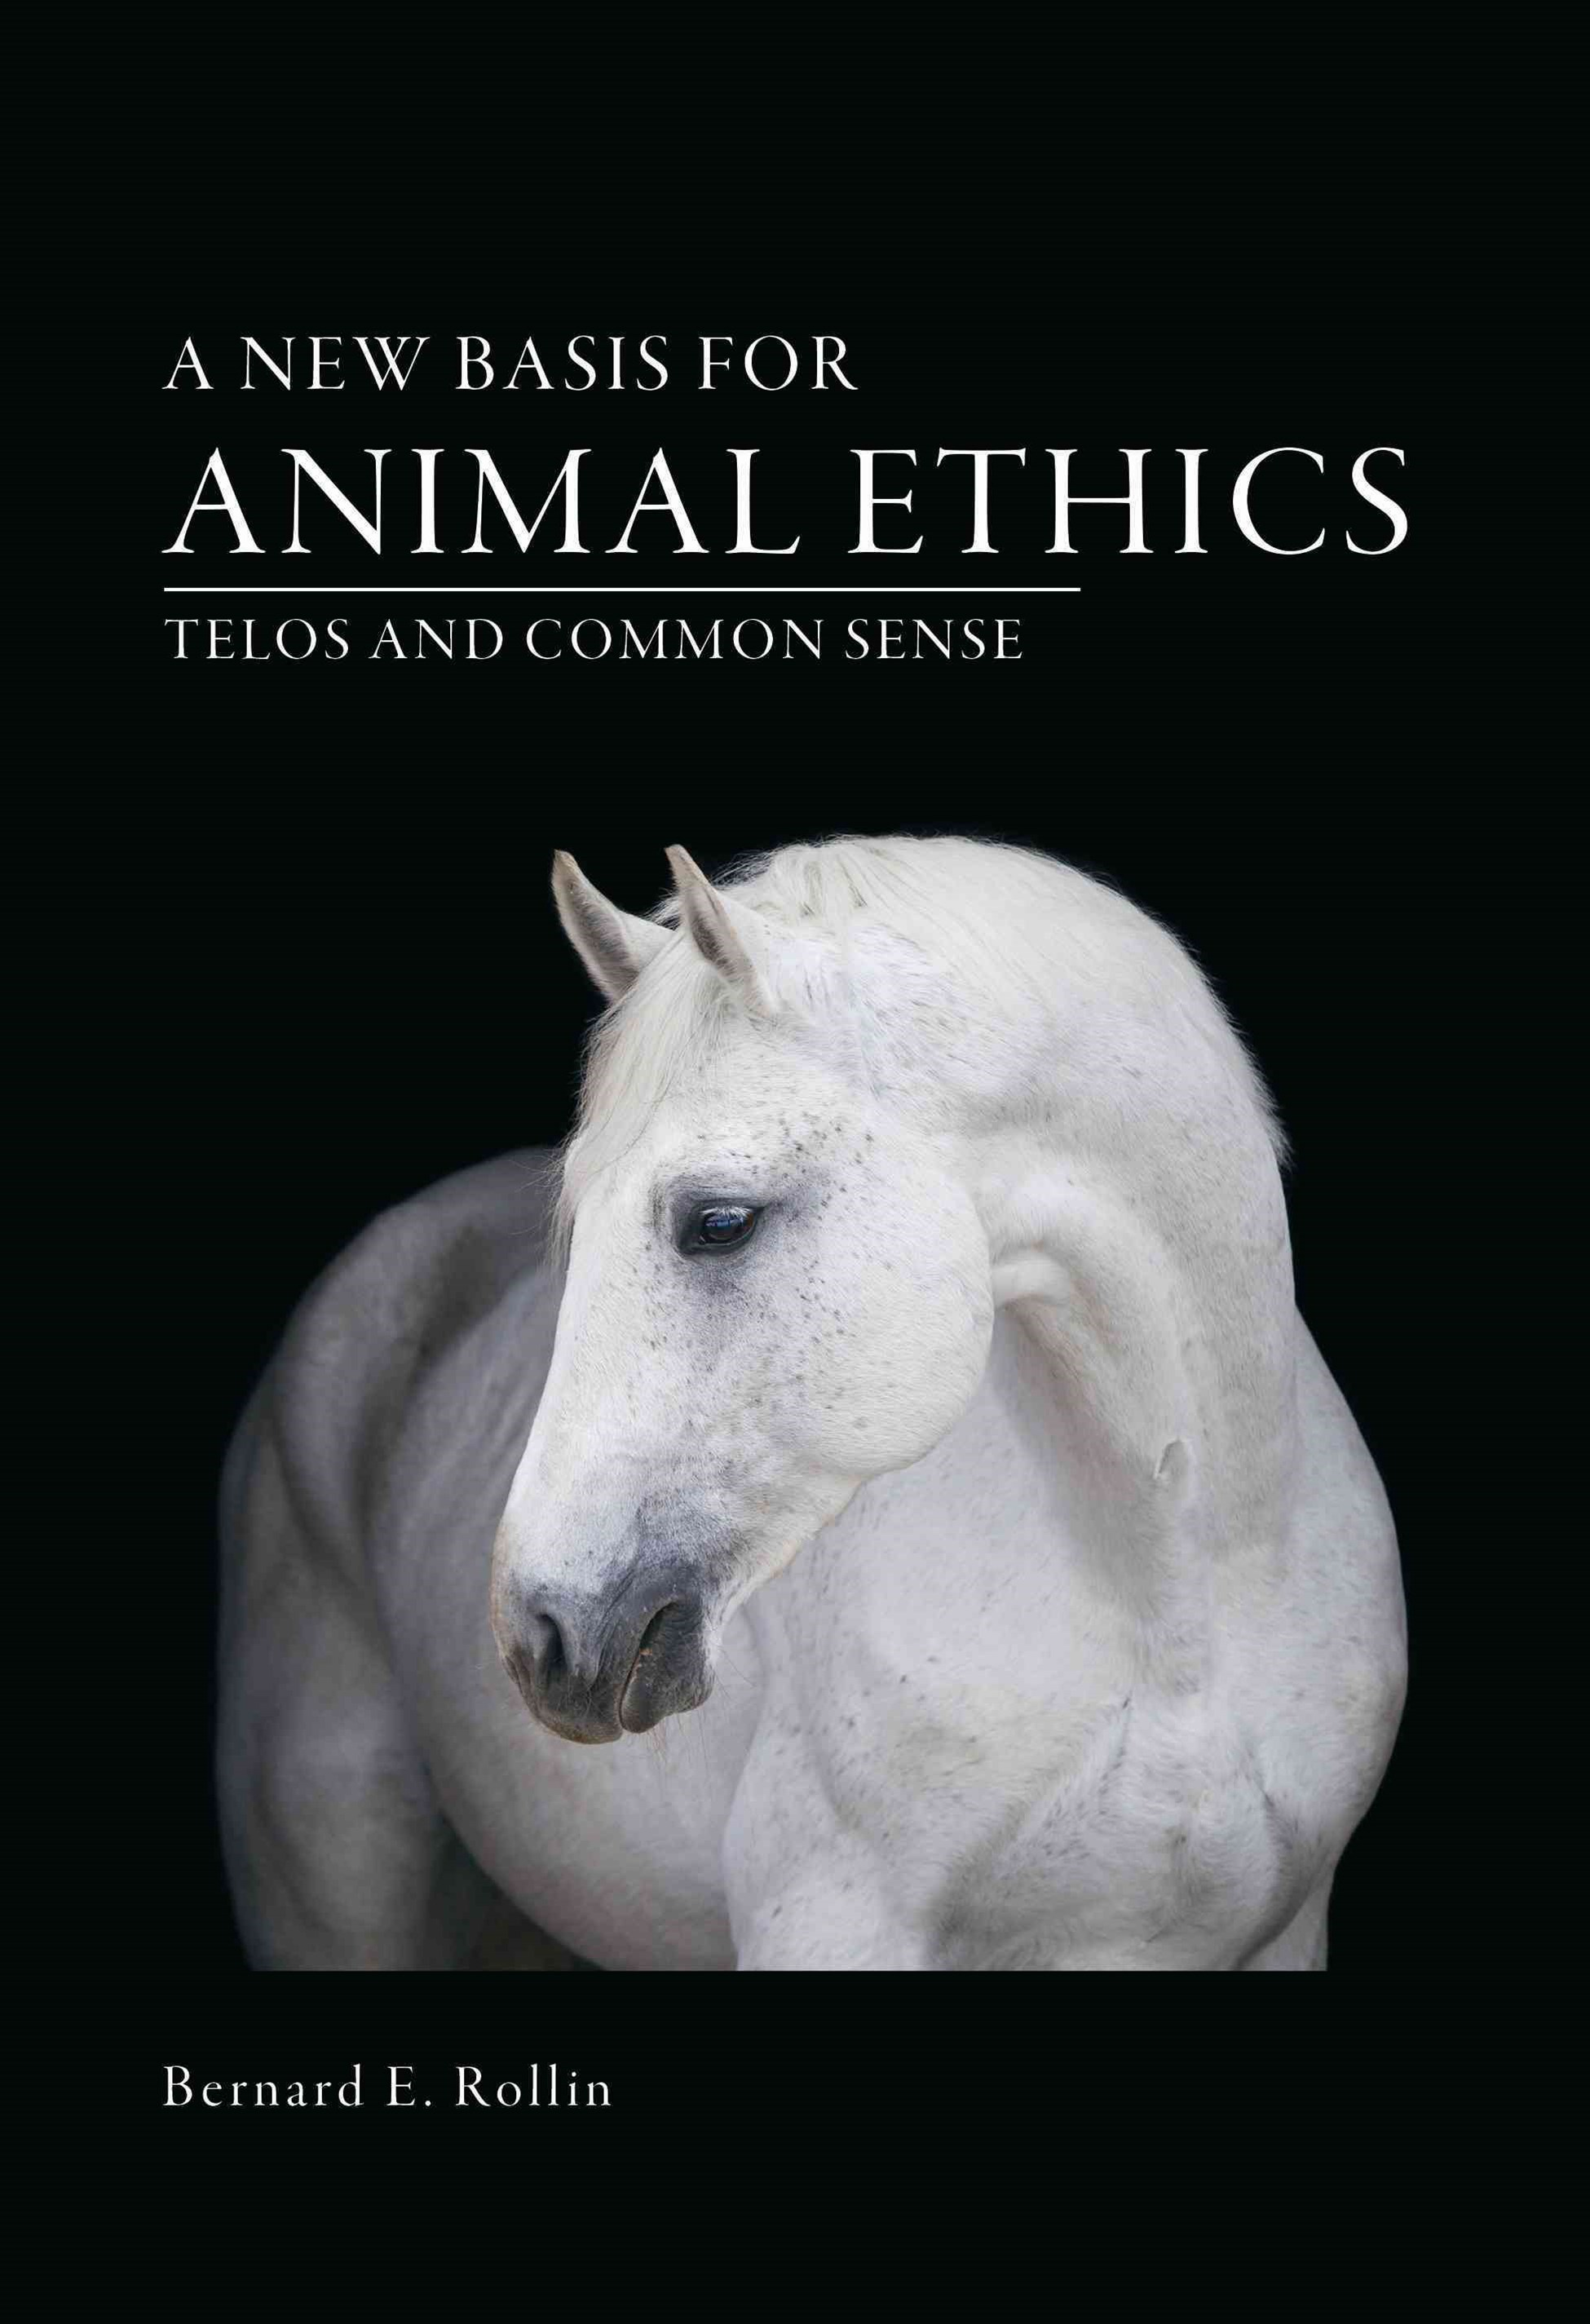 A New Basis for Animal Ethics